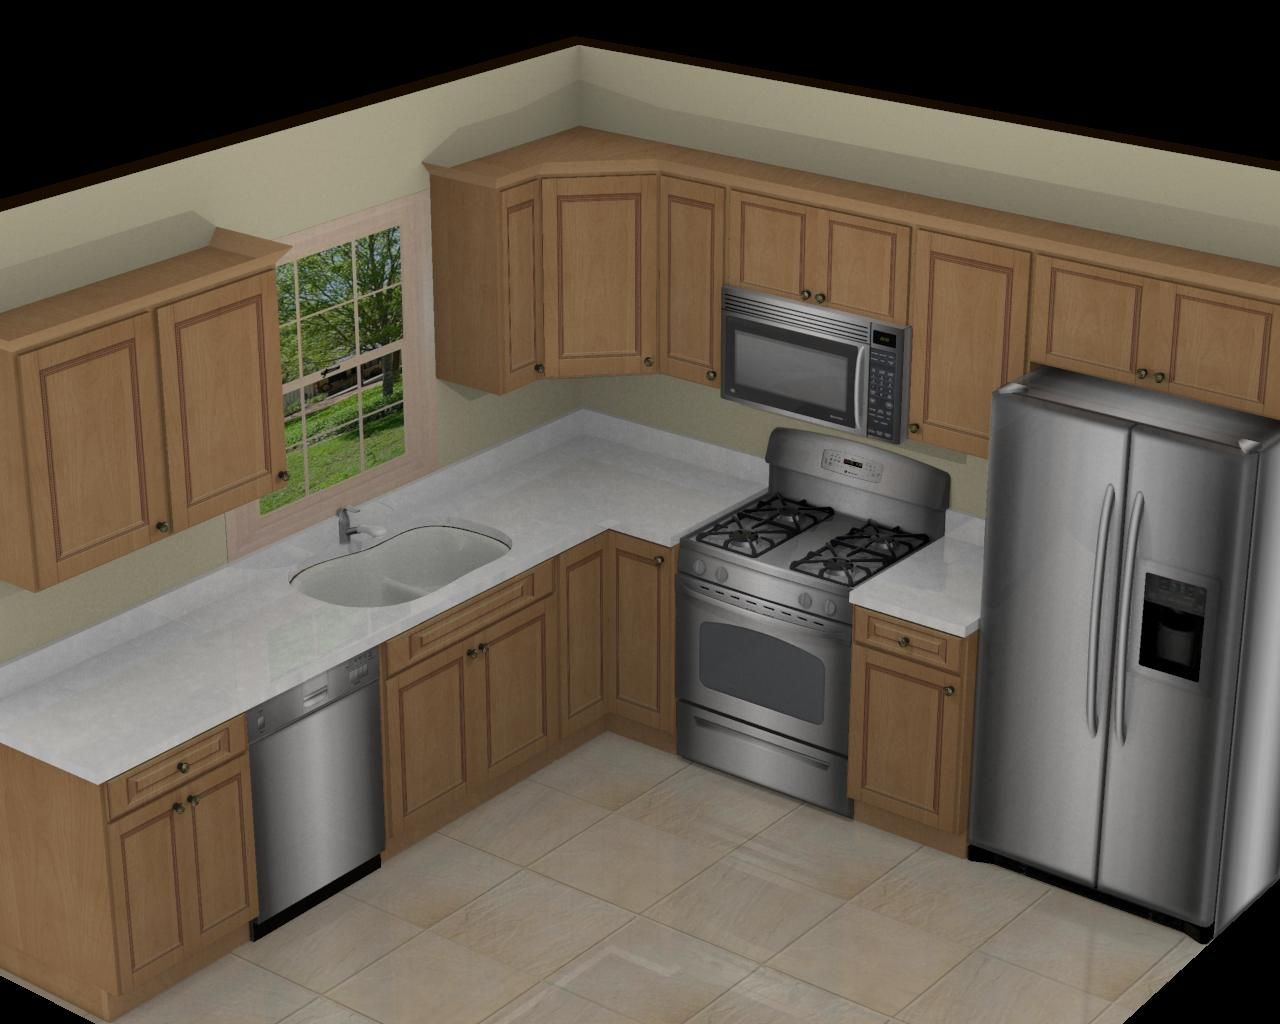 10x10 Kitchen Remodel Small Kitchen Layouts Small Kitchen